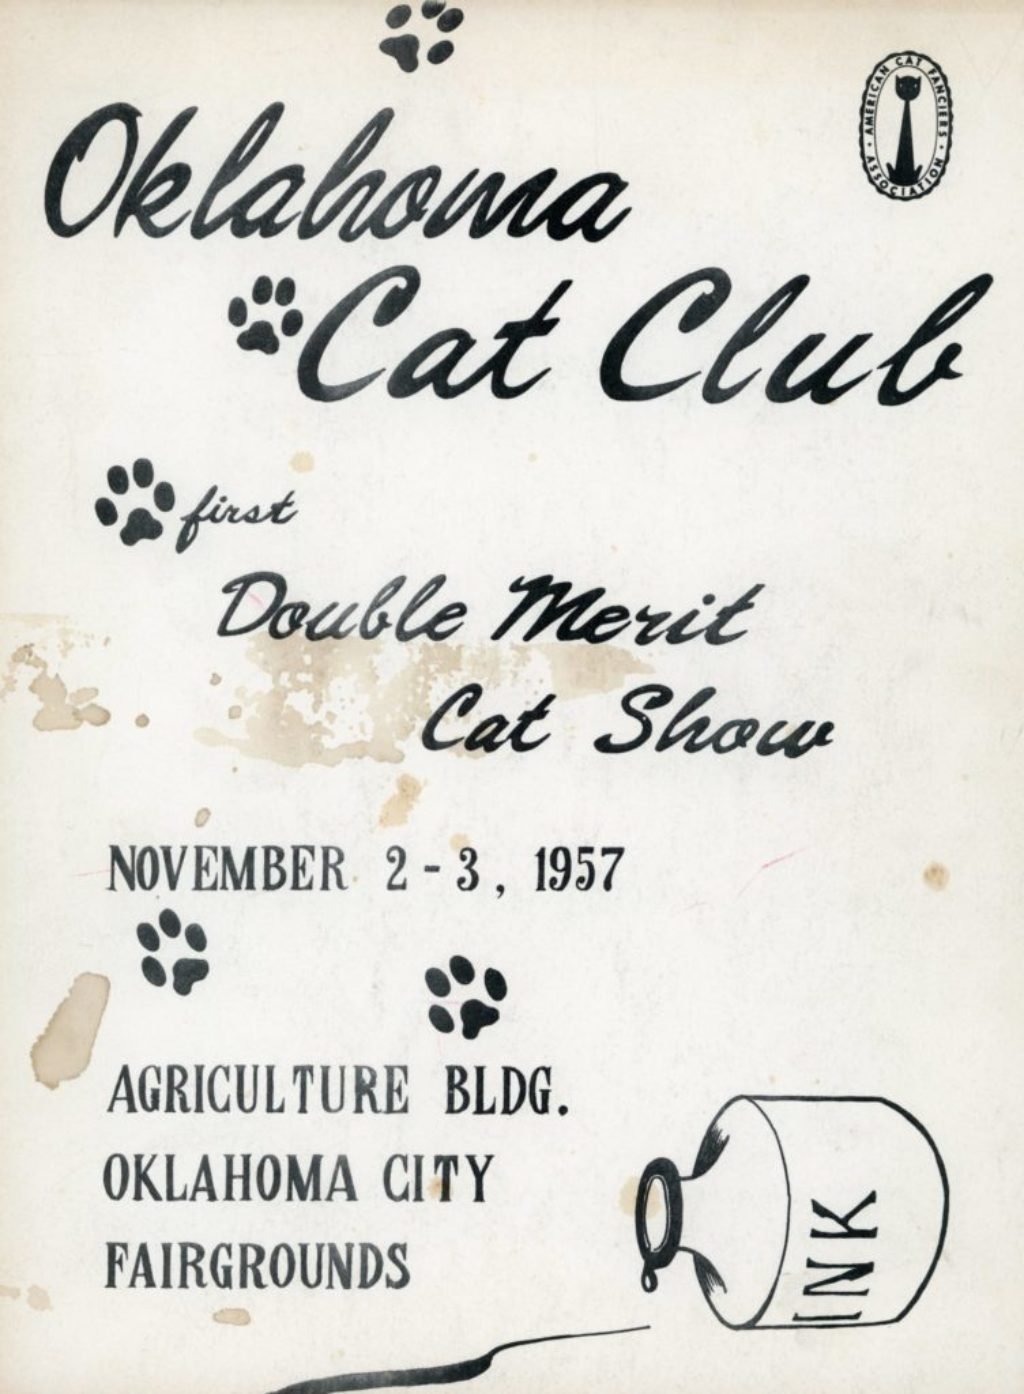 The Oklahoma Cat Club Double Merit Show of 1957